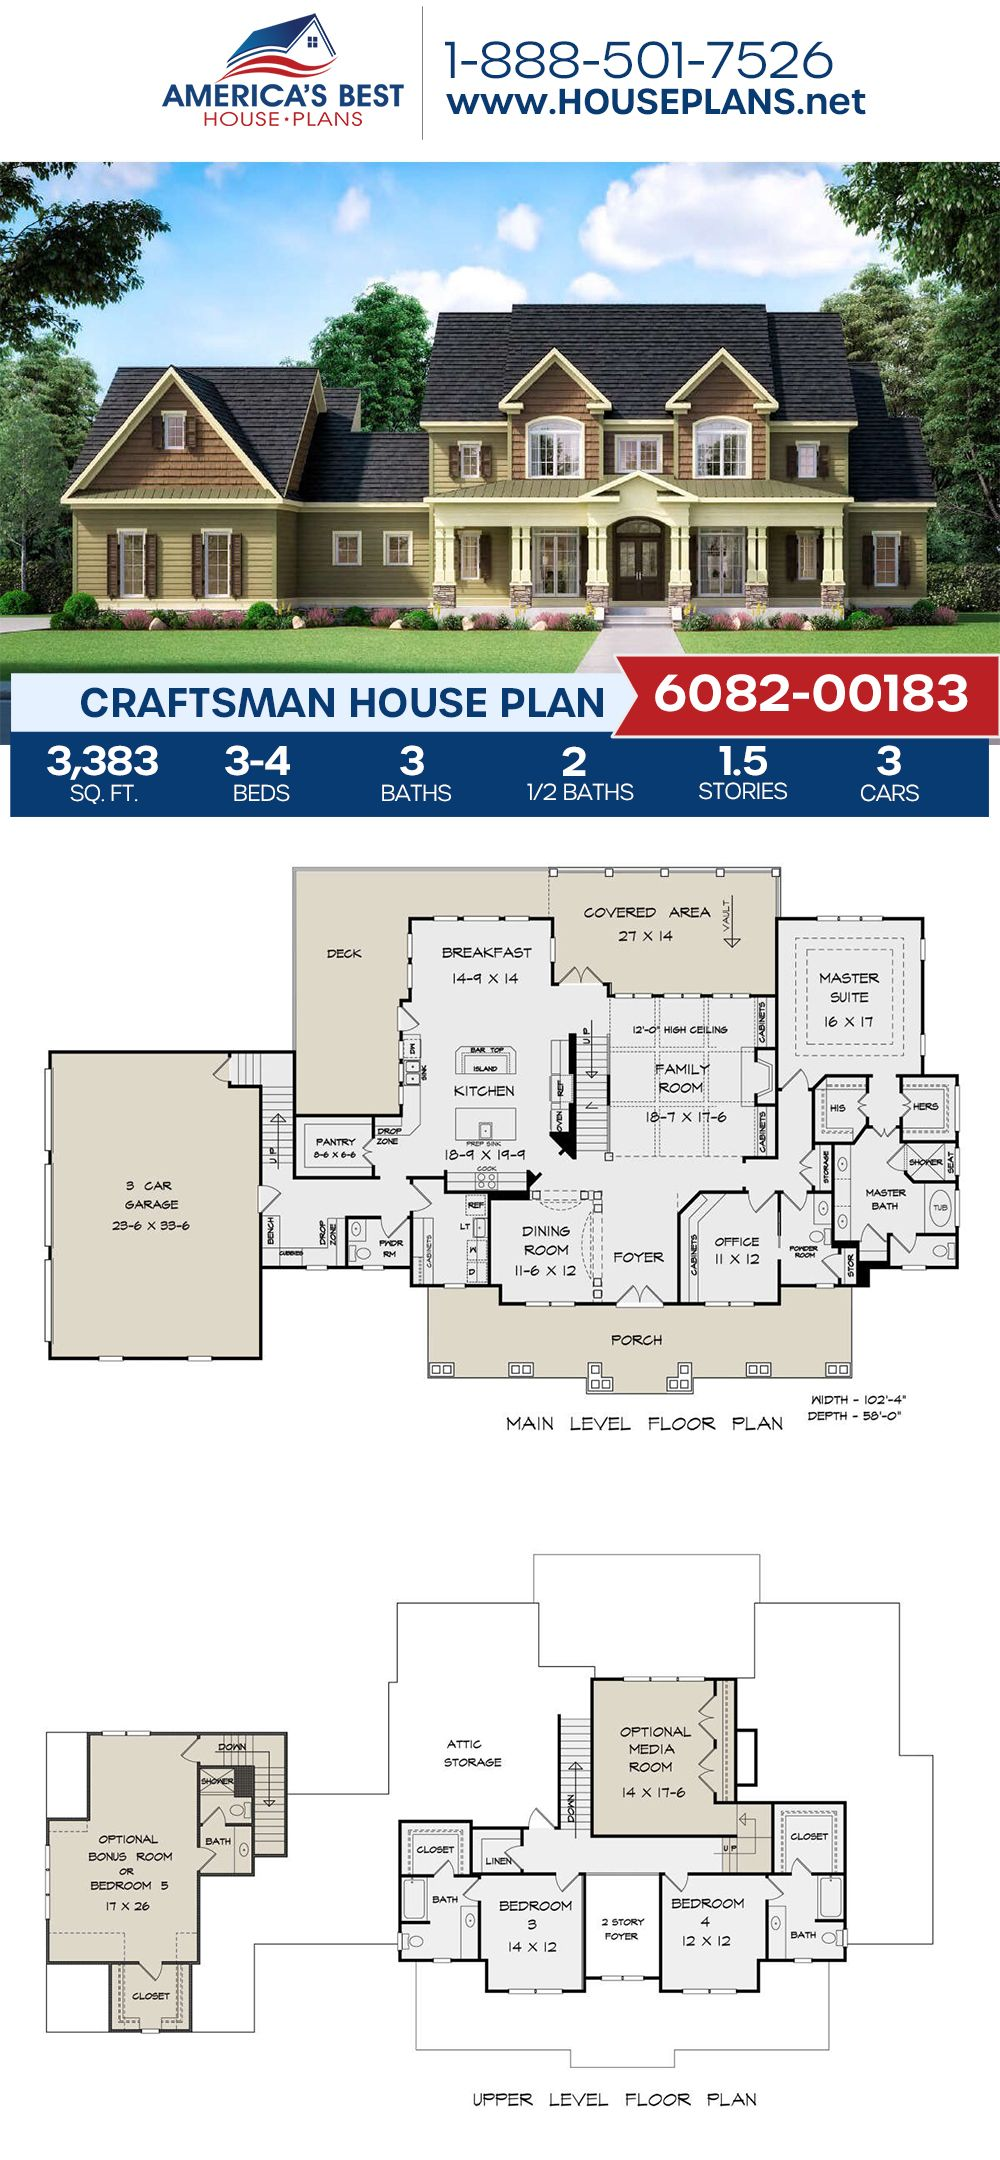 House Plan 6082 00183 Craftsman Plan 3 383 Square Feet 3 4 Bedrooms 4 Bathrooms In 2020 Craftsman House Plans Craftsman House House Plans